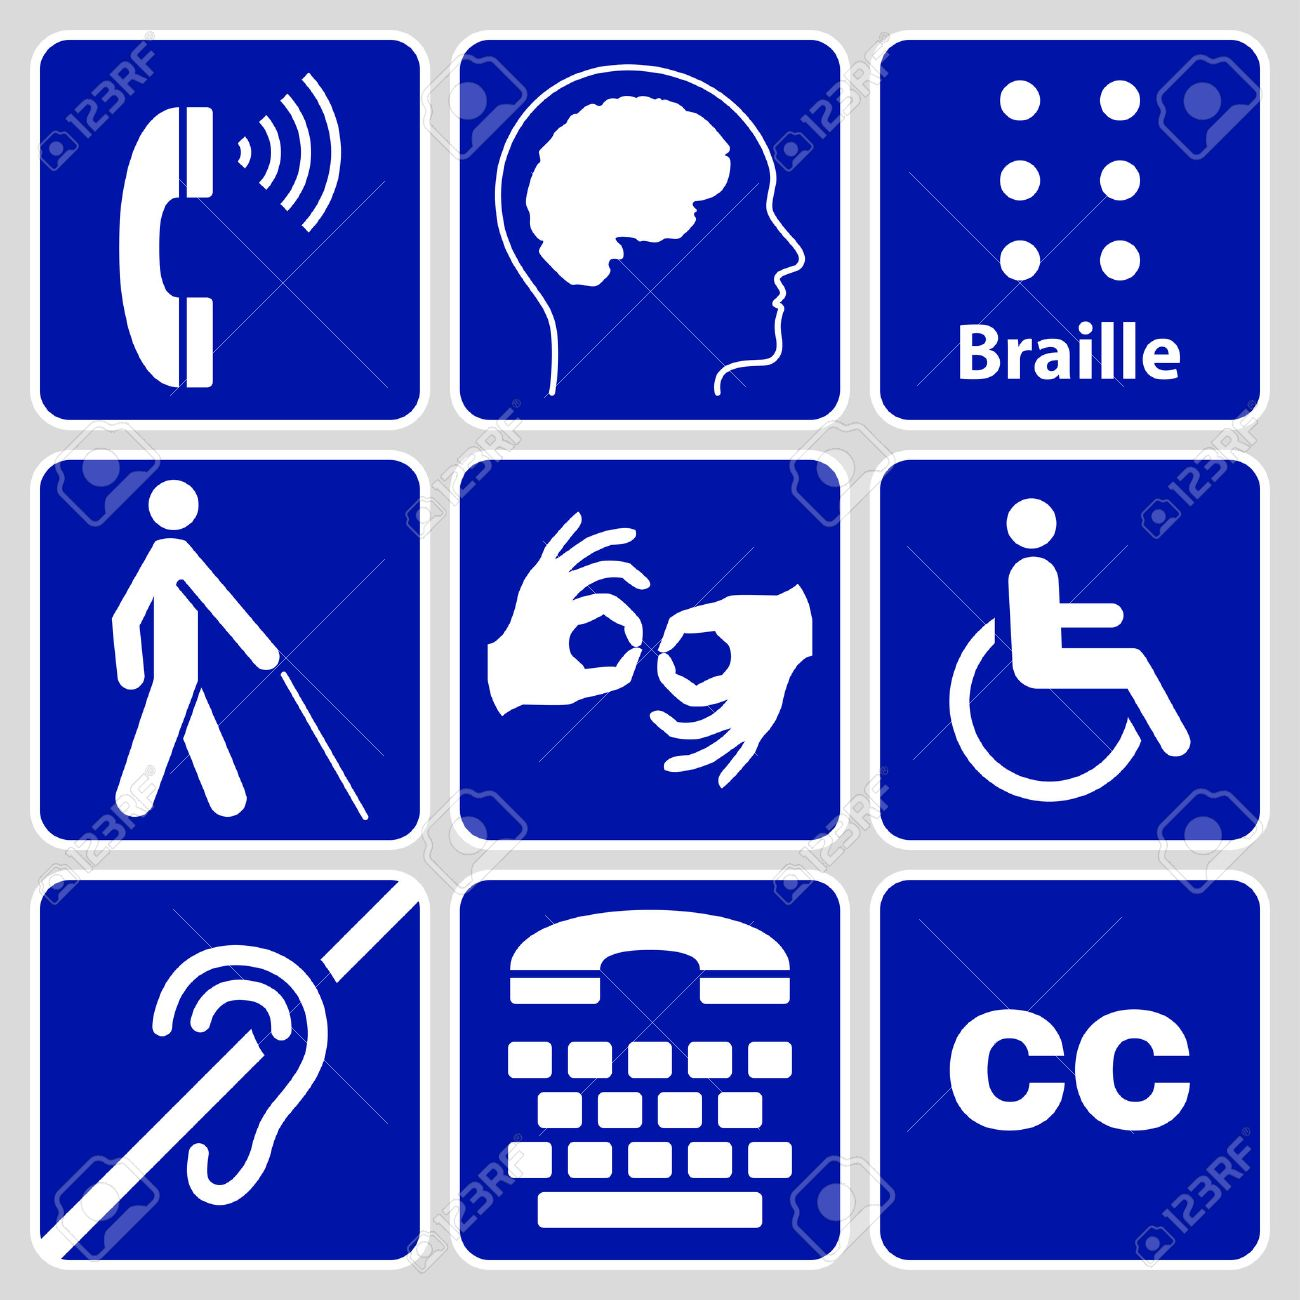 blue disability symbols and signs collection, may be used to publicize accessibility of places, and other activities for people with various disabilities.vector illustration - 35627470